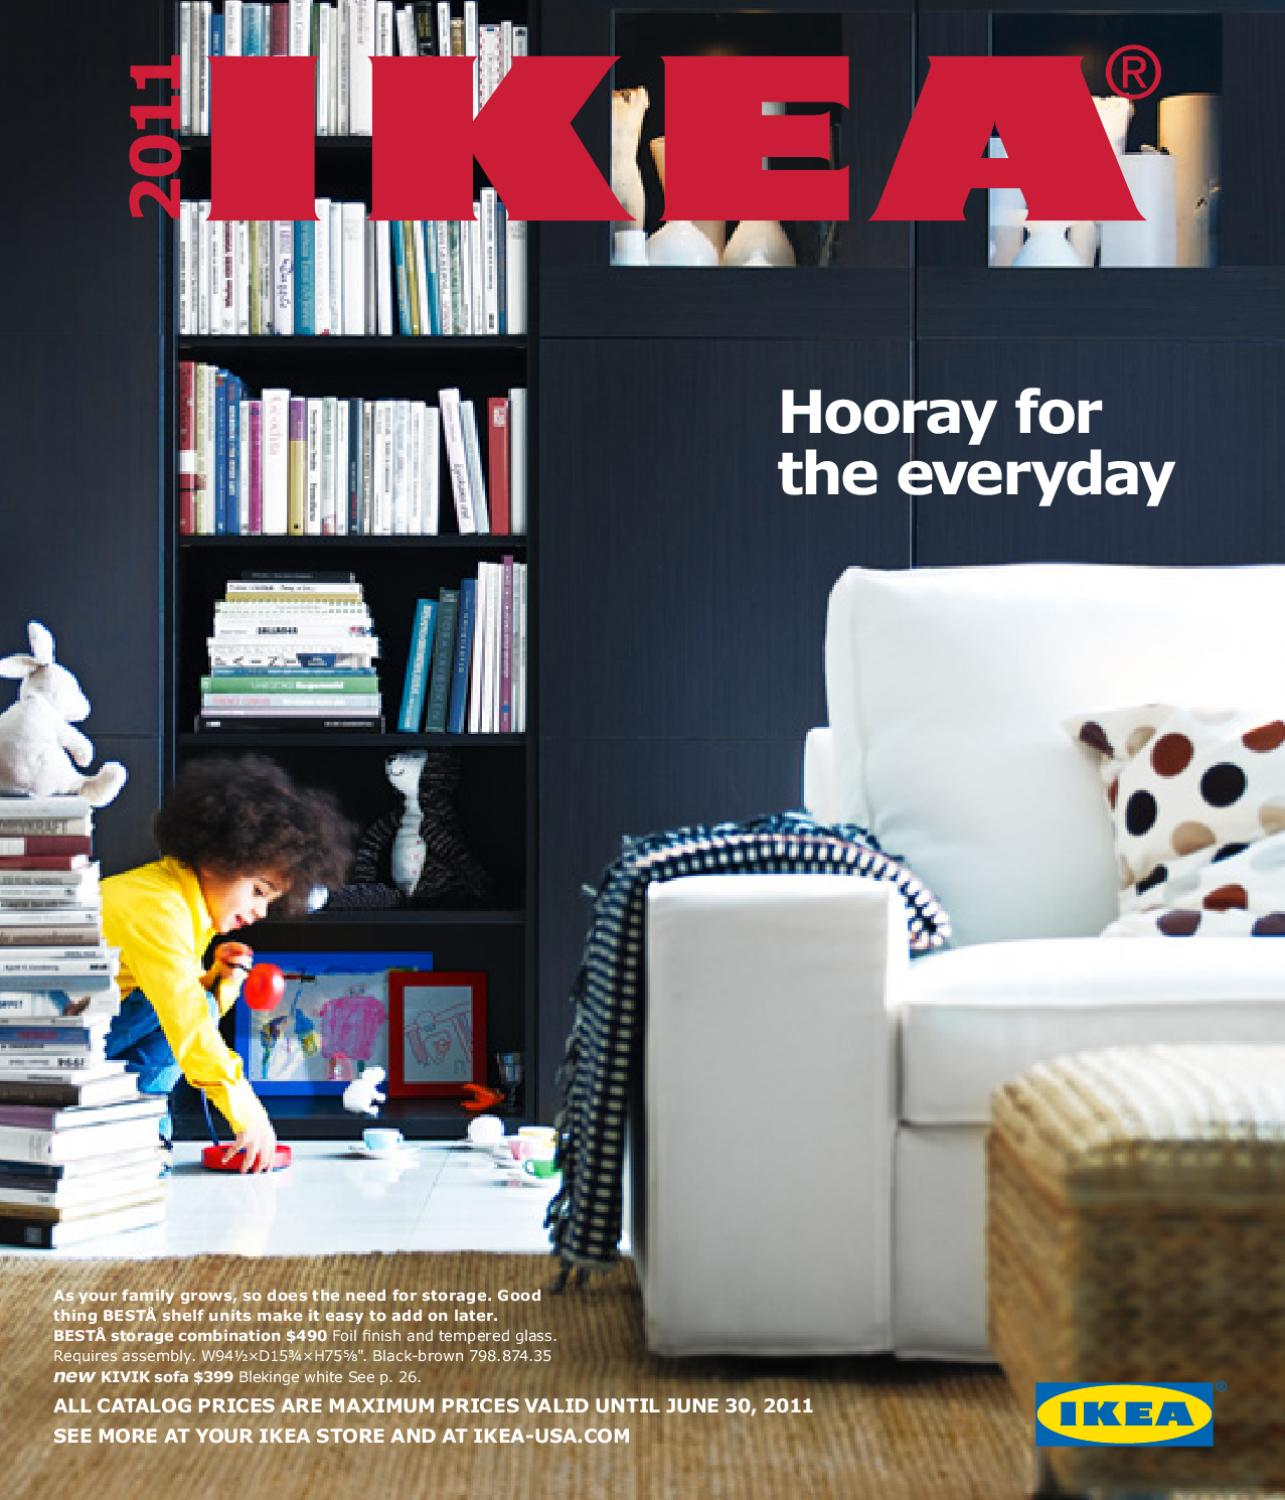 Peachy Ikea Catalog 2011 By Britney Bane Issuu Download Free Architecture Designs Scobabritishbridgeorg